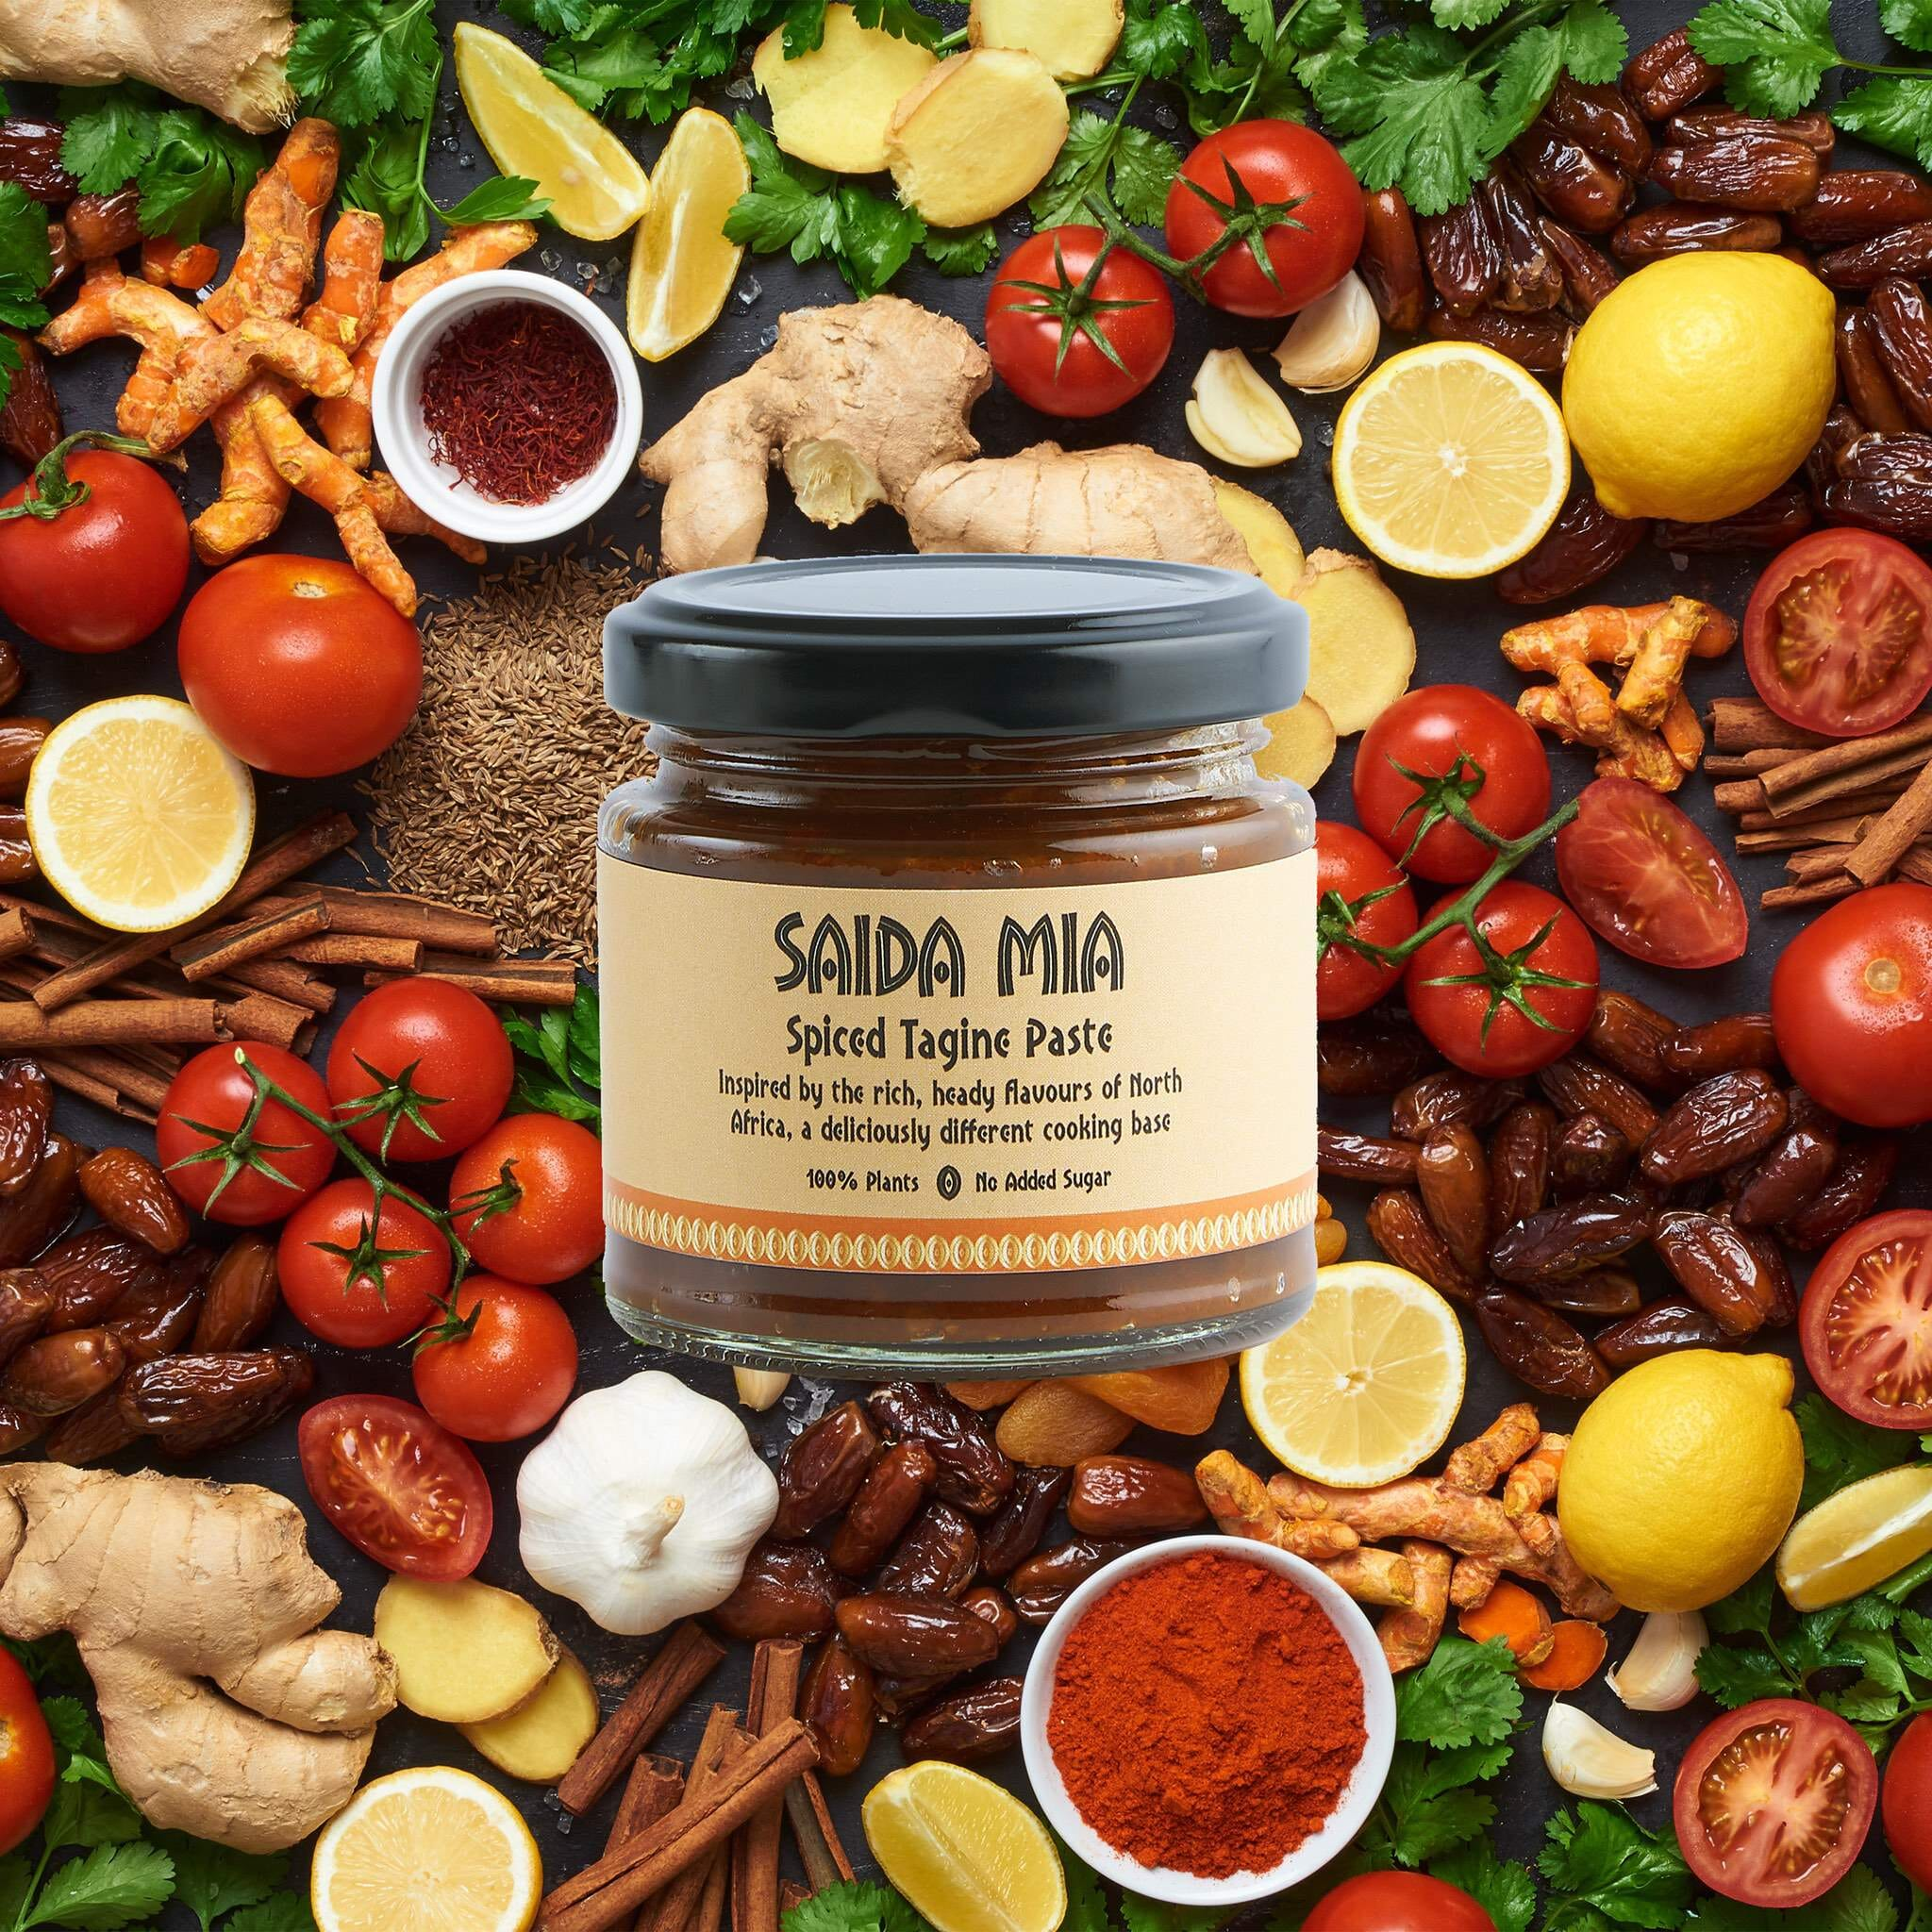 Saida Mia African Products Tagine Paste Pack Ingredients Image